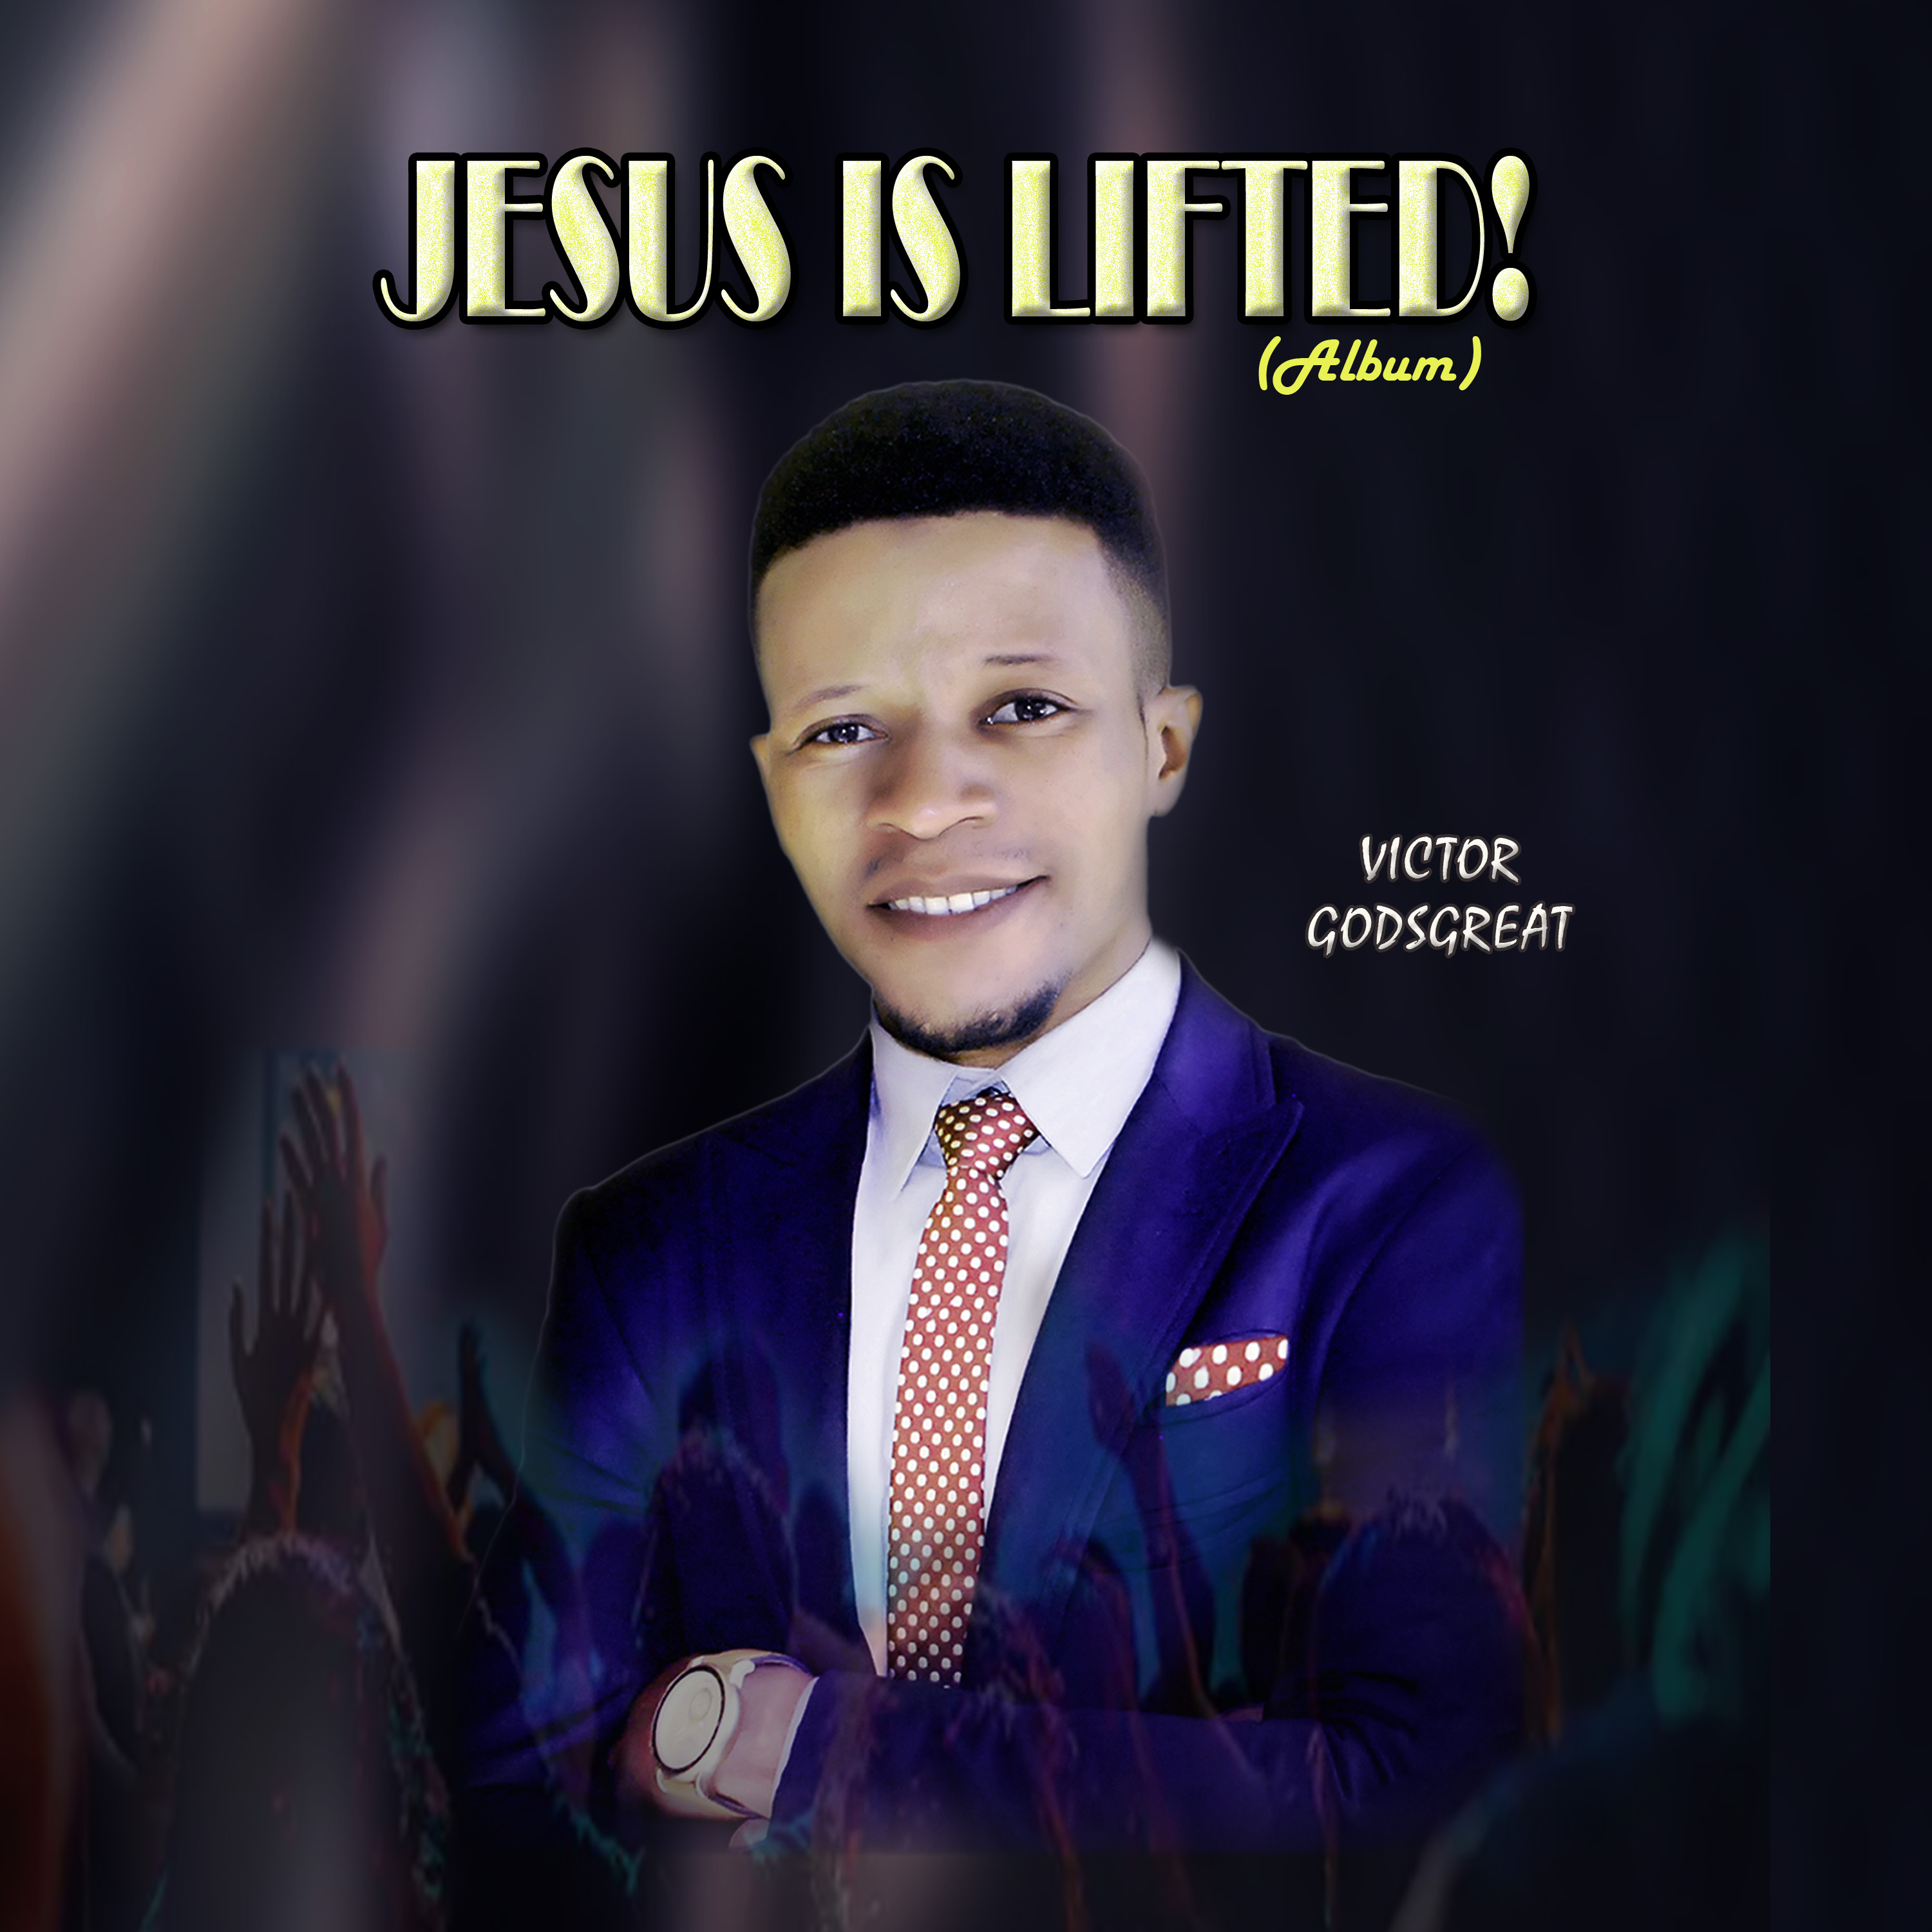 FAITH STILL WORKS WONDERS - Victor Godsgreat